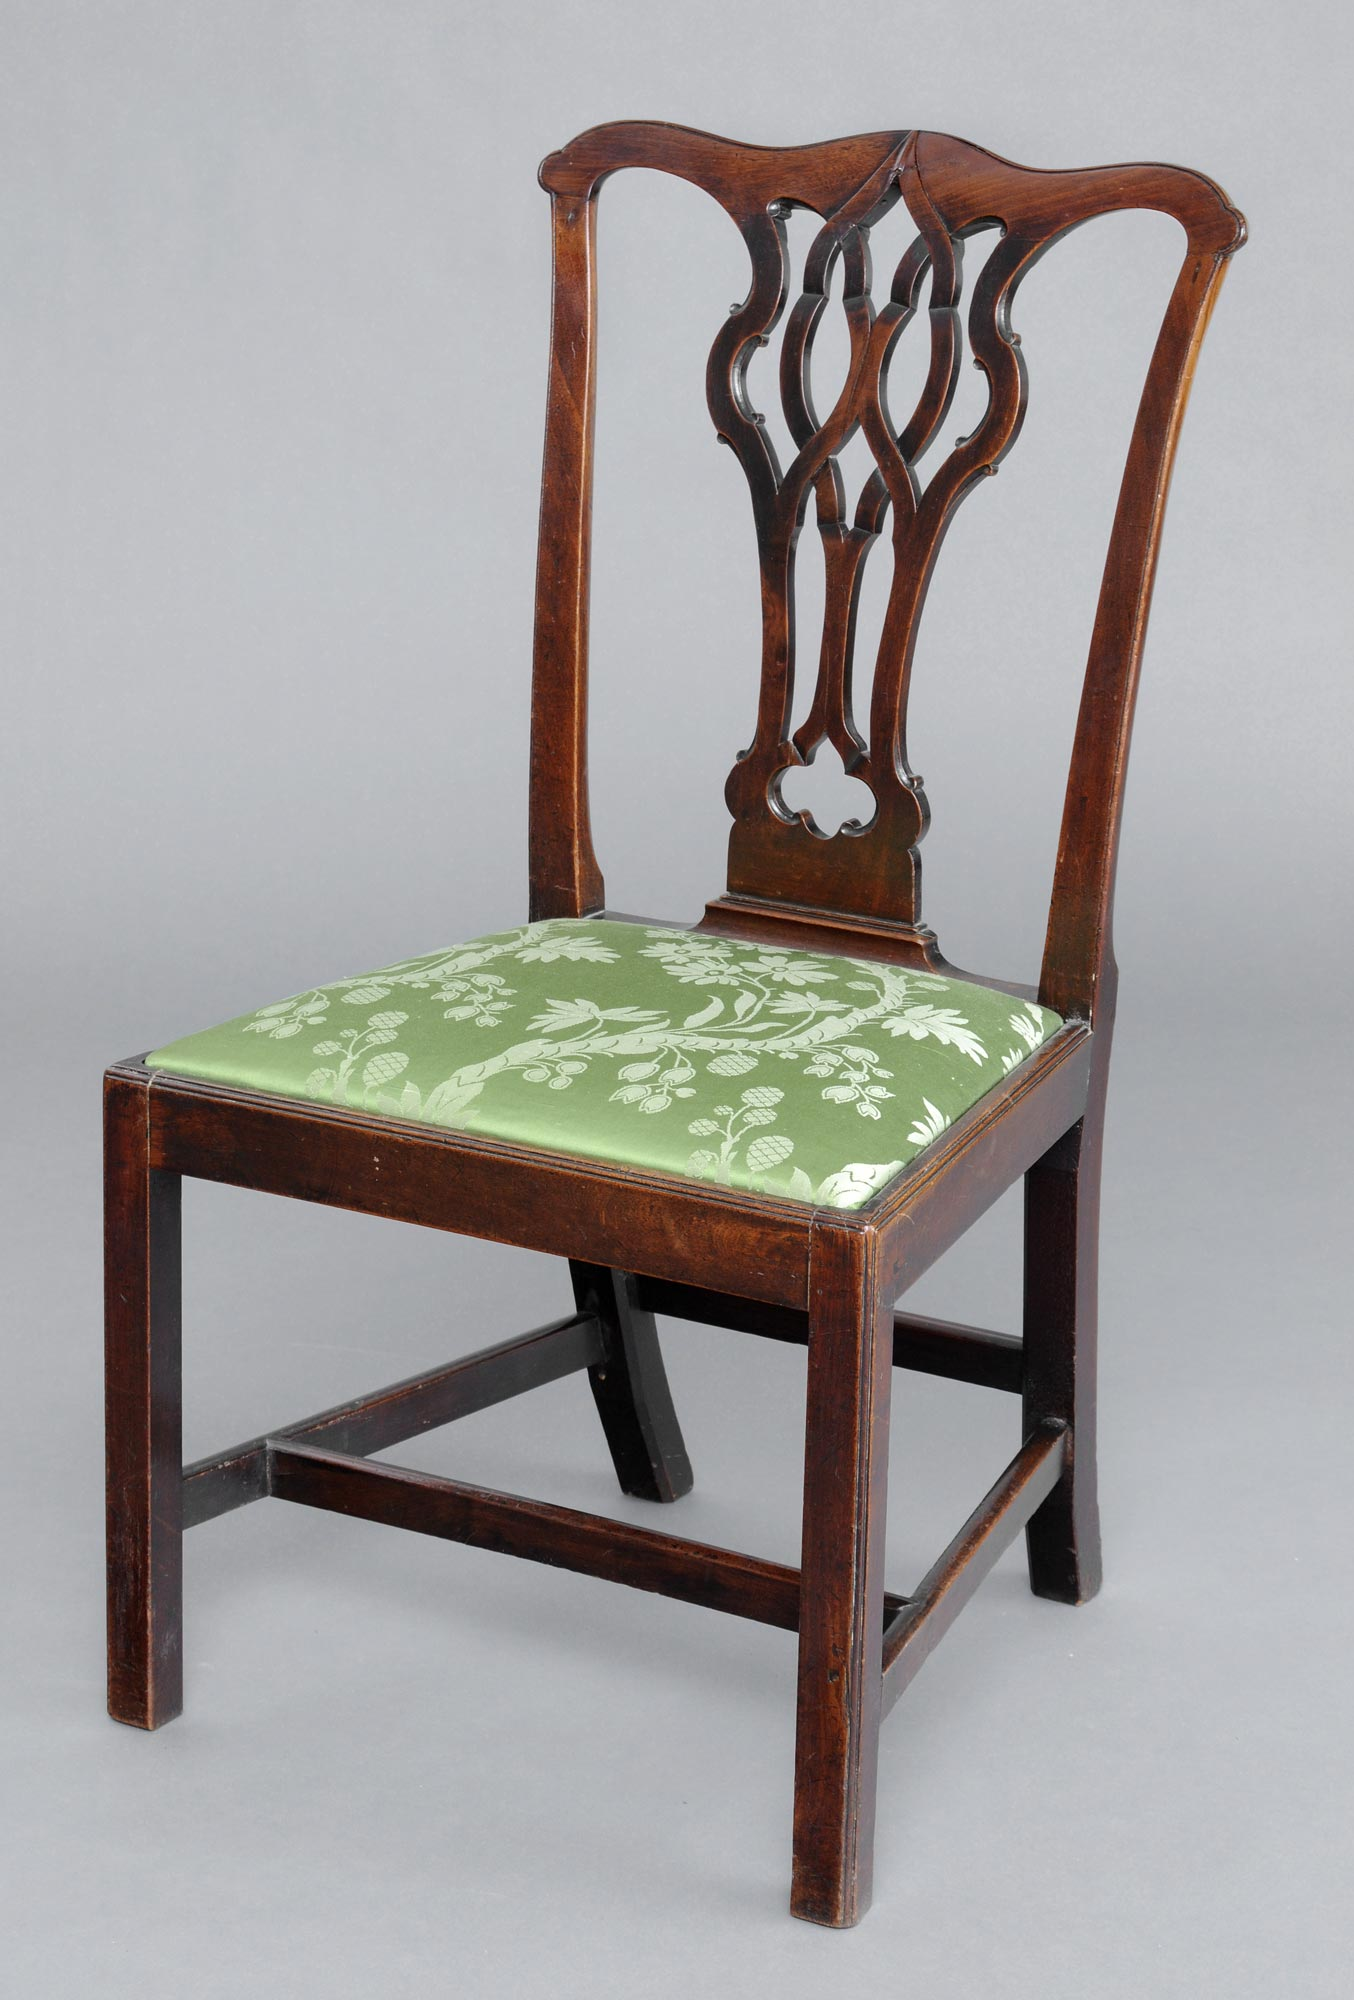 English Chippendale Antique Side Chair Antique Mahogany Side Chairs - Chippendale Chairs ~ Home & Interior Design